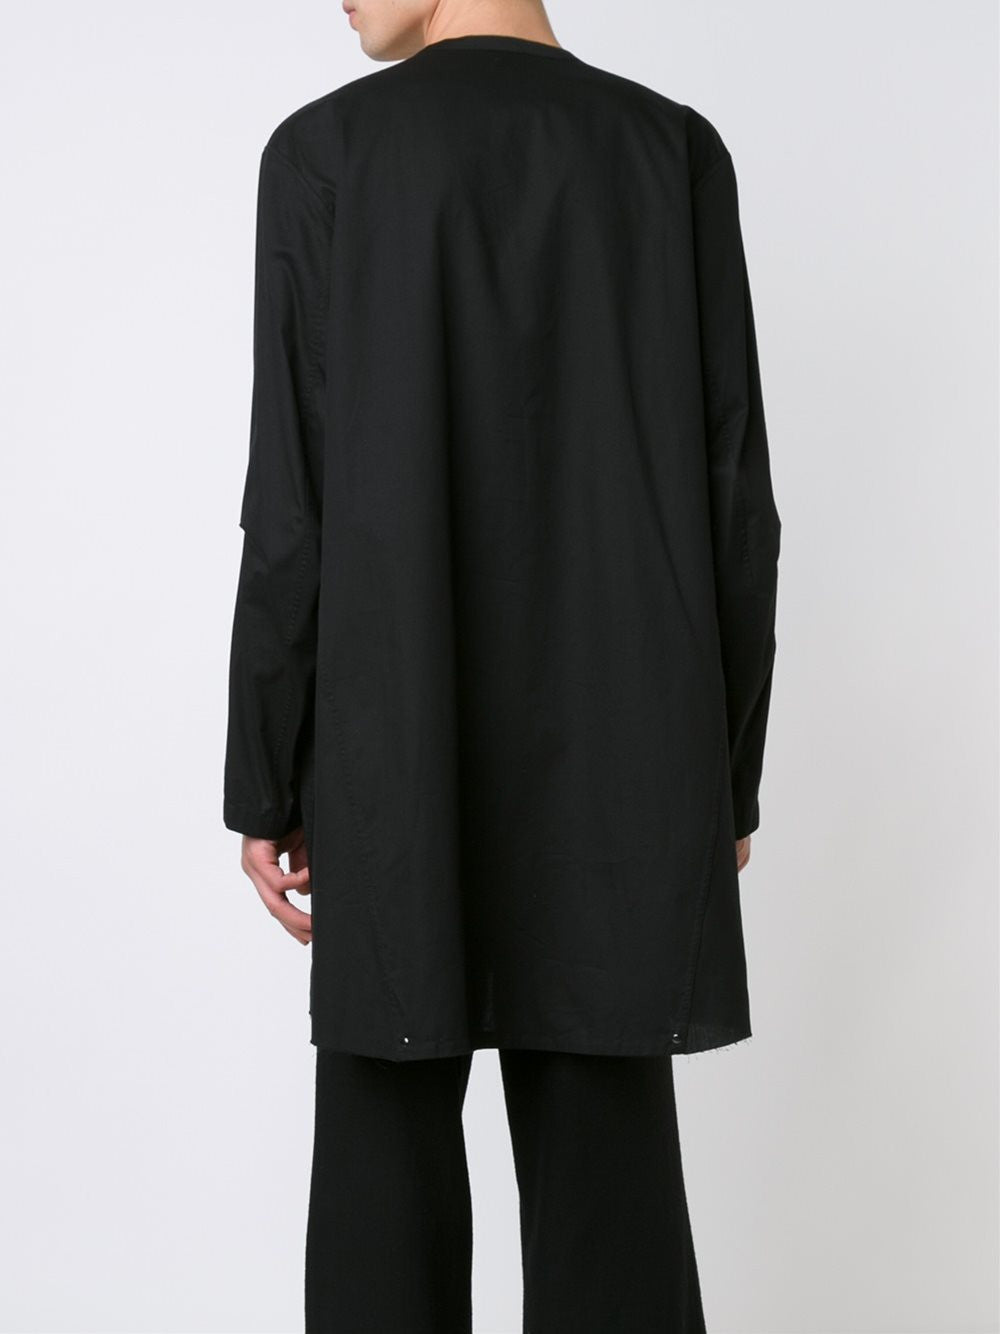 Decourative Cotton Tunic | 1602-3612-159